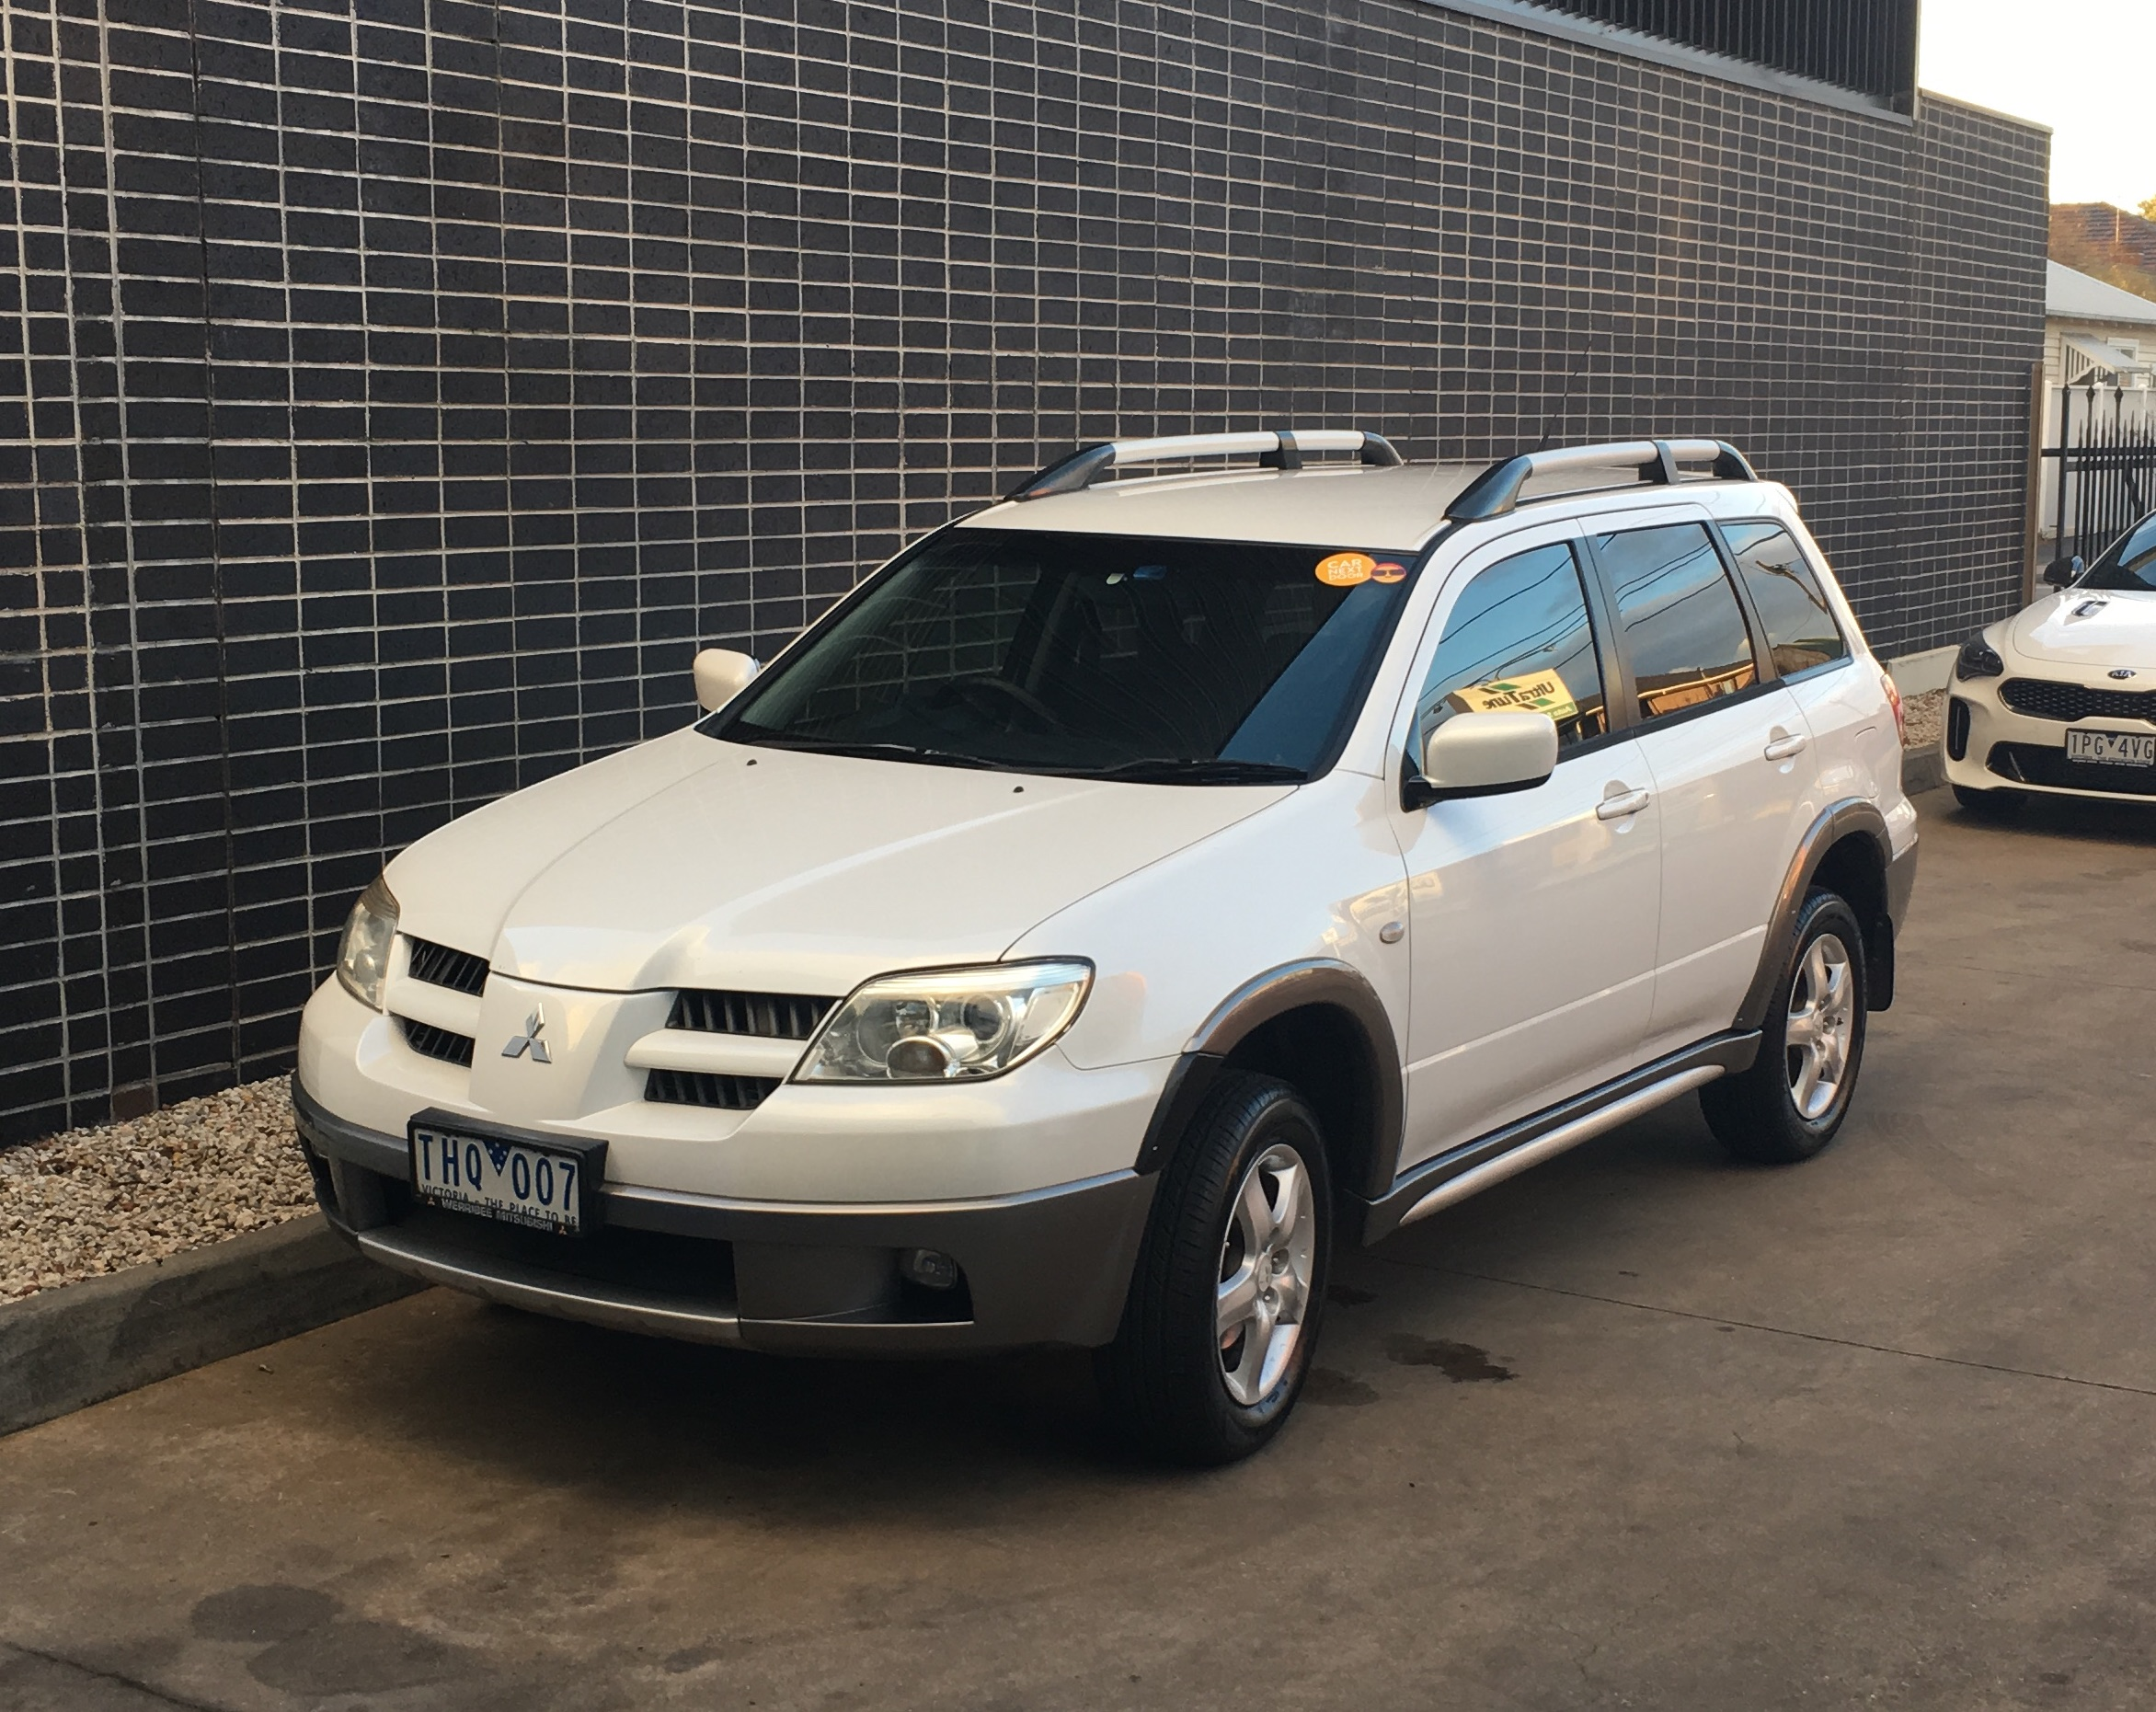 Picture of Mere's 2004 Mitsubishi Outlander